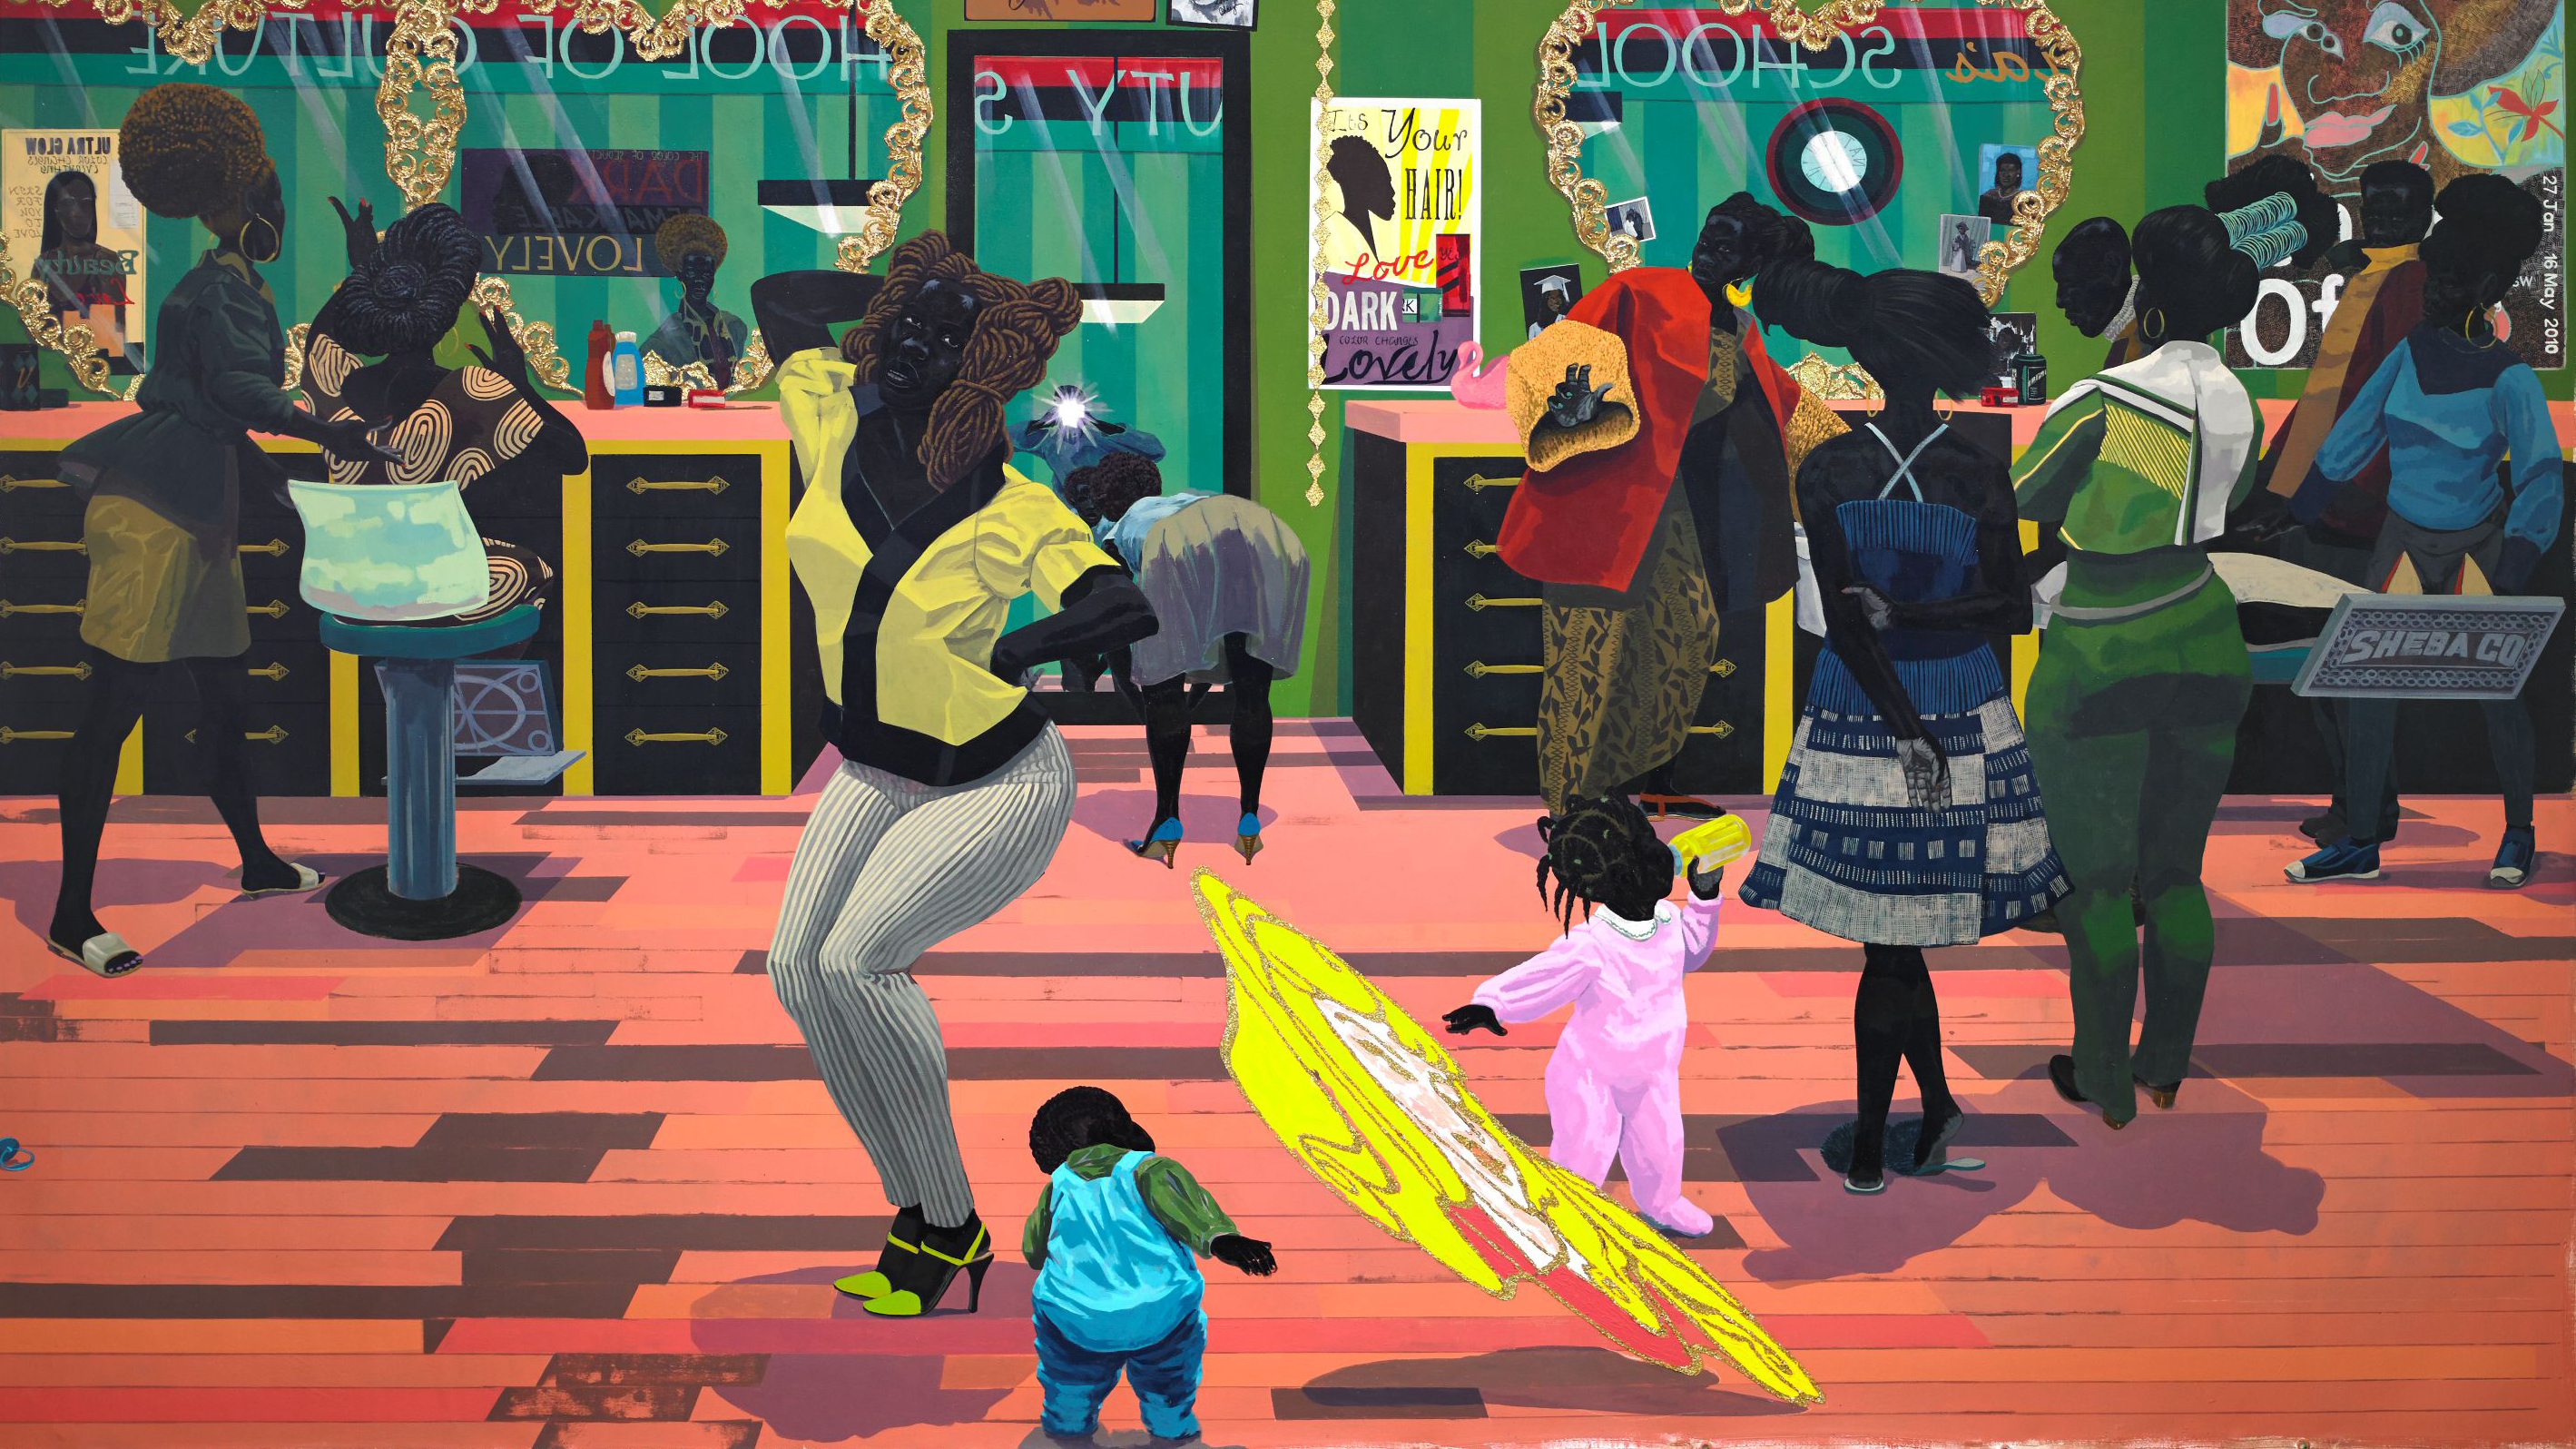 kerry james marshall a black presence in the art world is unot negotiableu npr